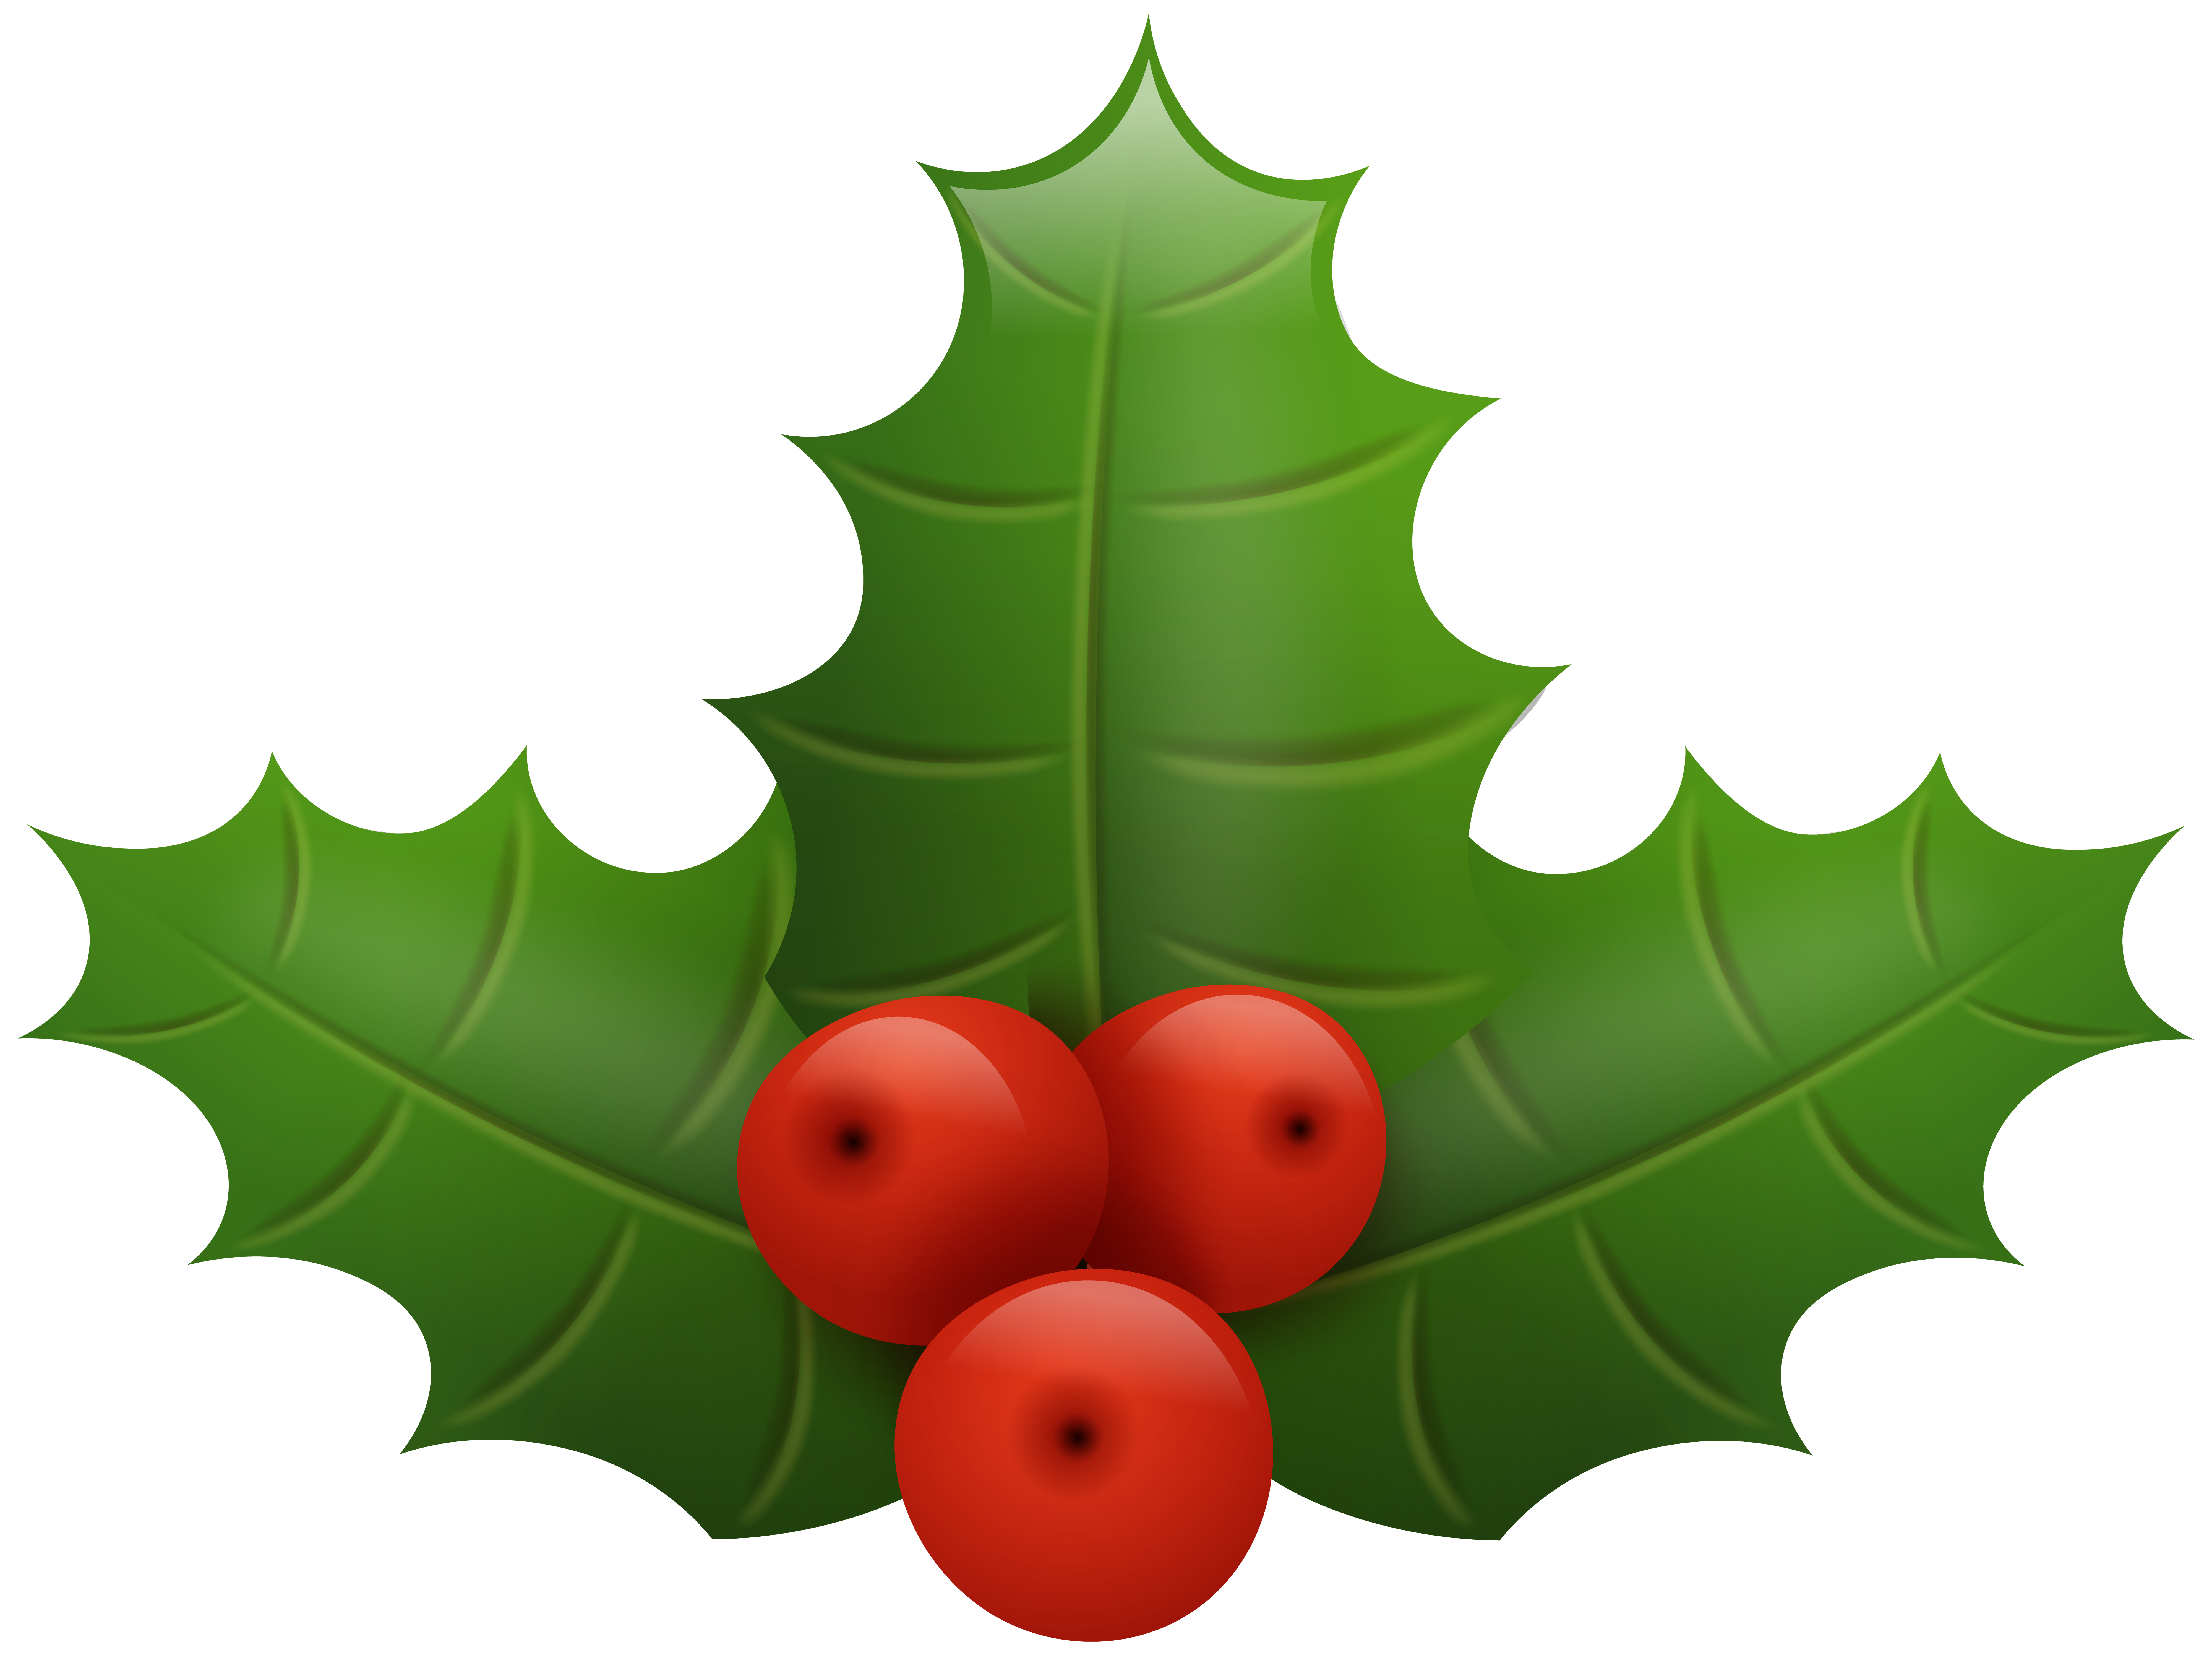 8000x5984 Christmas Holly Png Clip Art Imageu200b Gallery Yopriceville